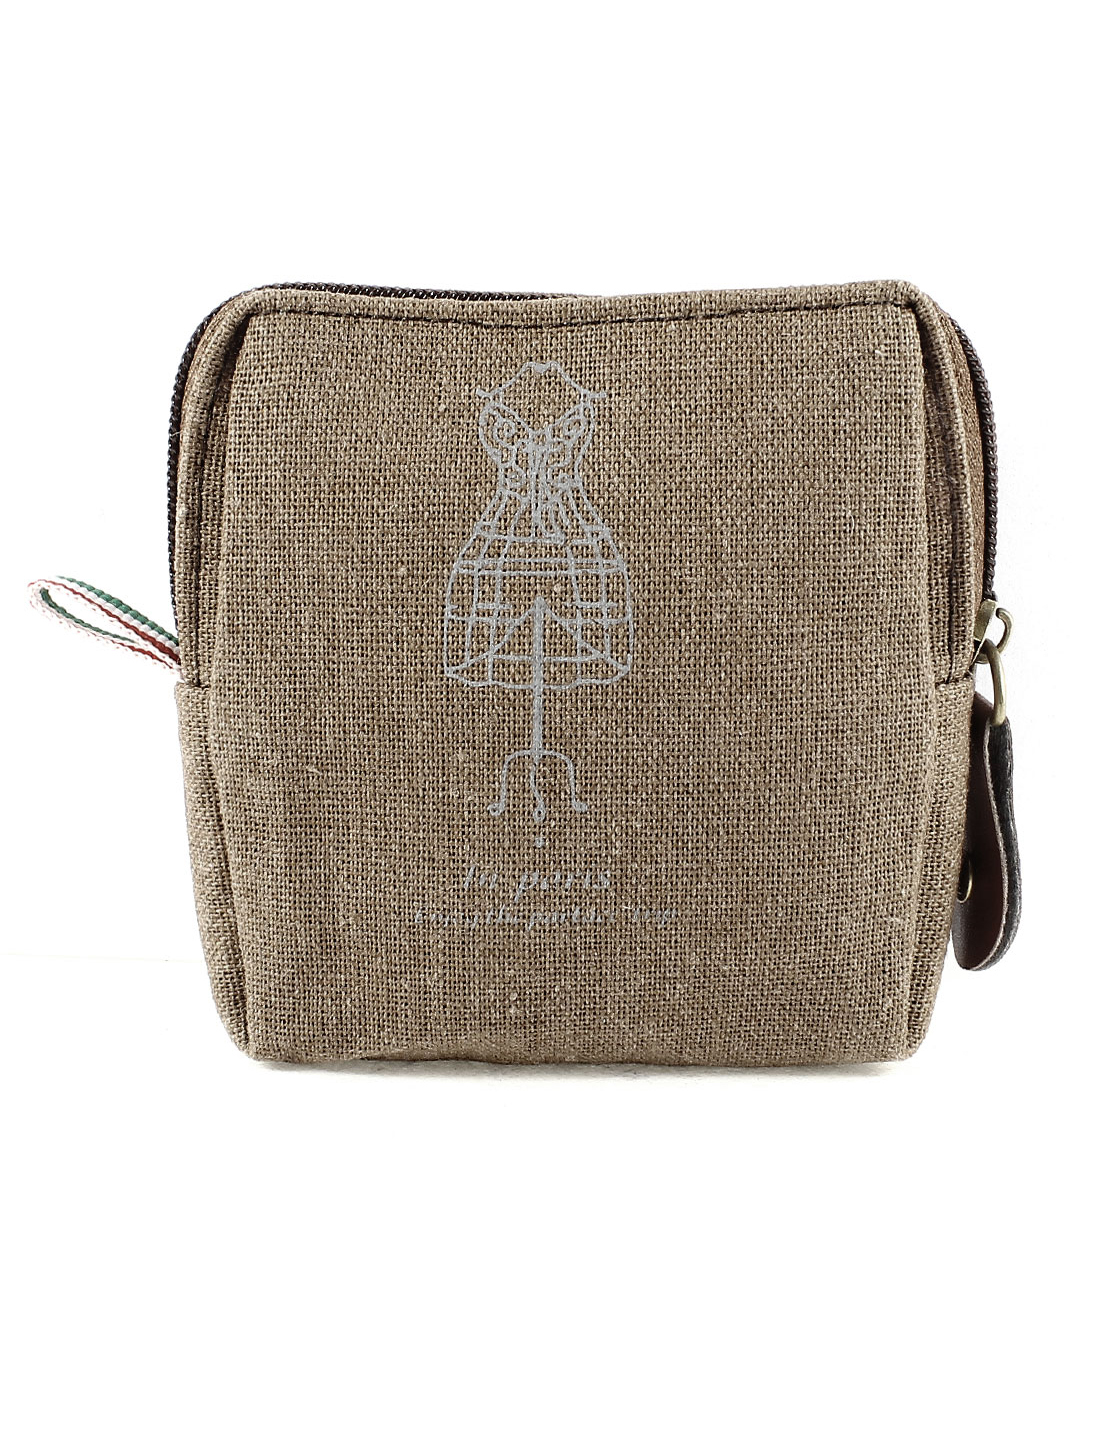 Ladies Canvas Zipper Closure Money Coin Change Purse Casual Brown